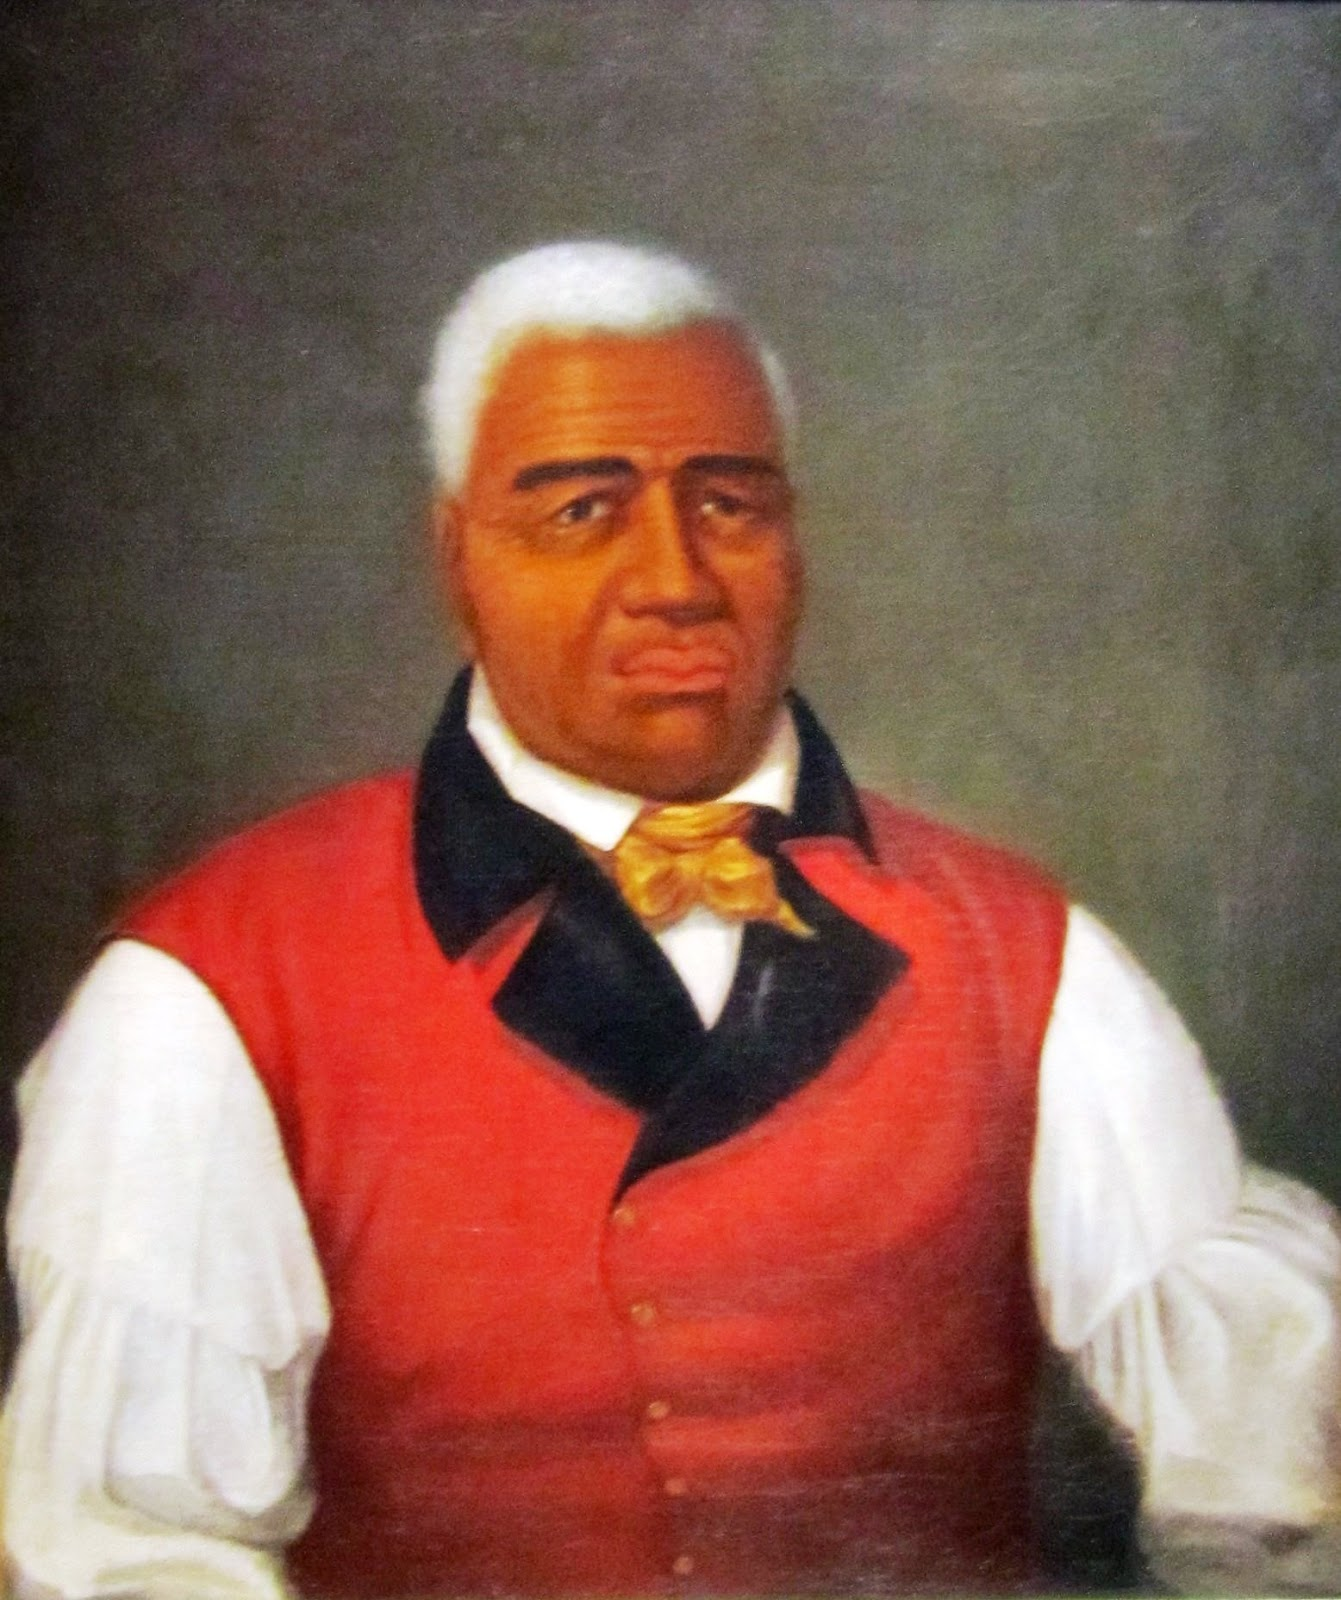 kamehameha fails to win hawaii from Ruthless and determined, king kamehameha eventually extended his rule from   who stormed the ship, threw the crewmen overboard, and beat them to death   kamehameha was unable to defeat the increasingly powerful keoua, but he.